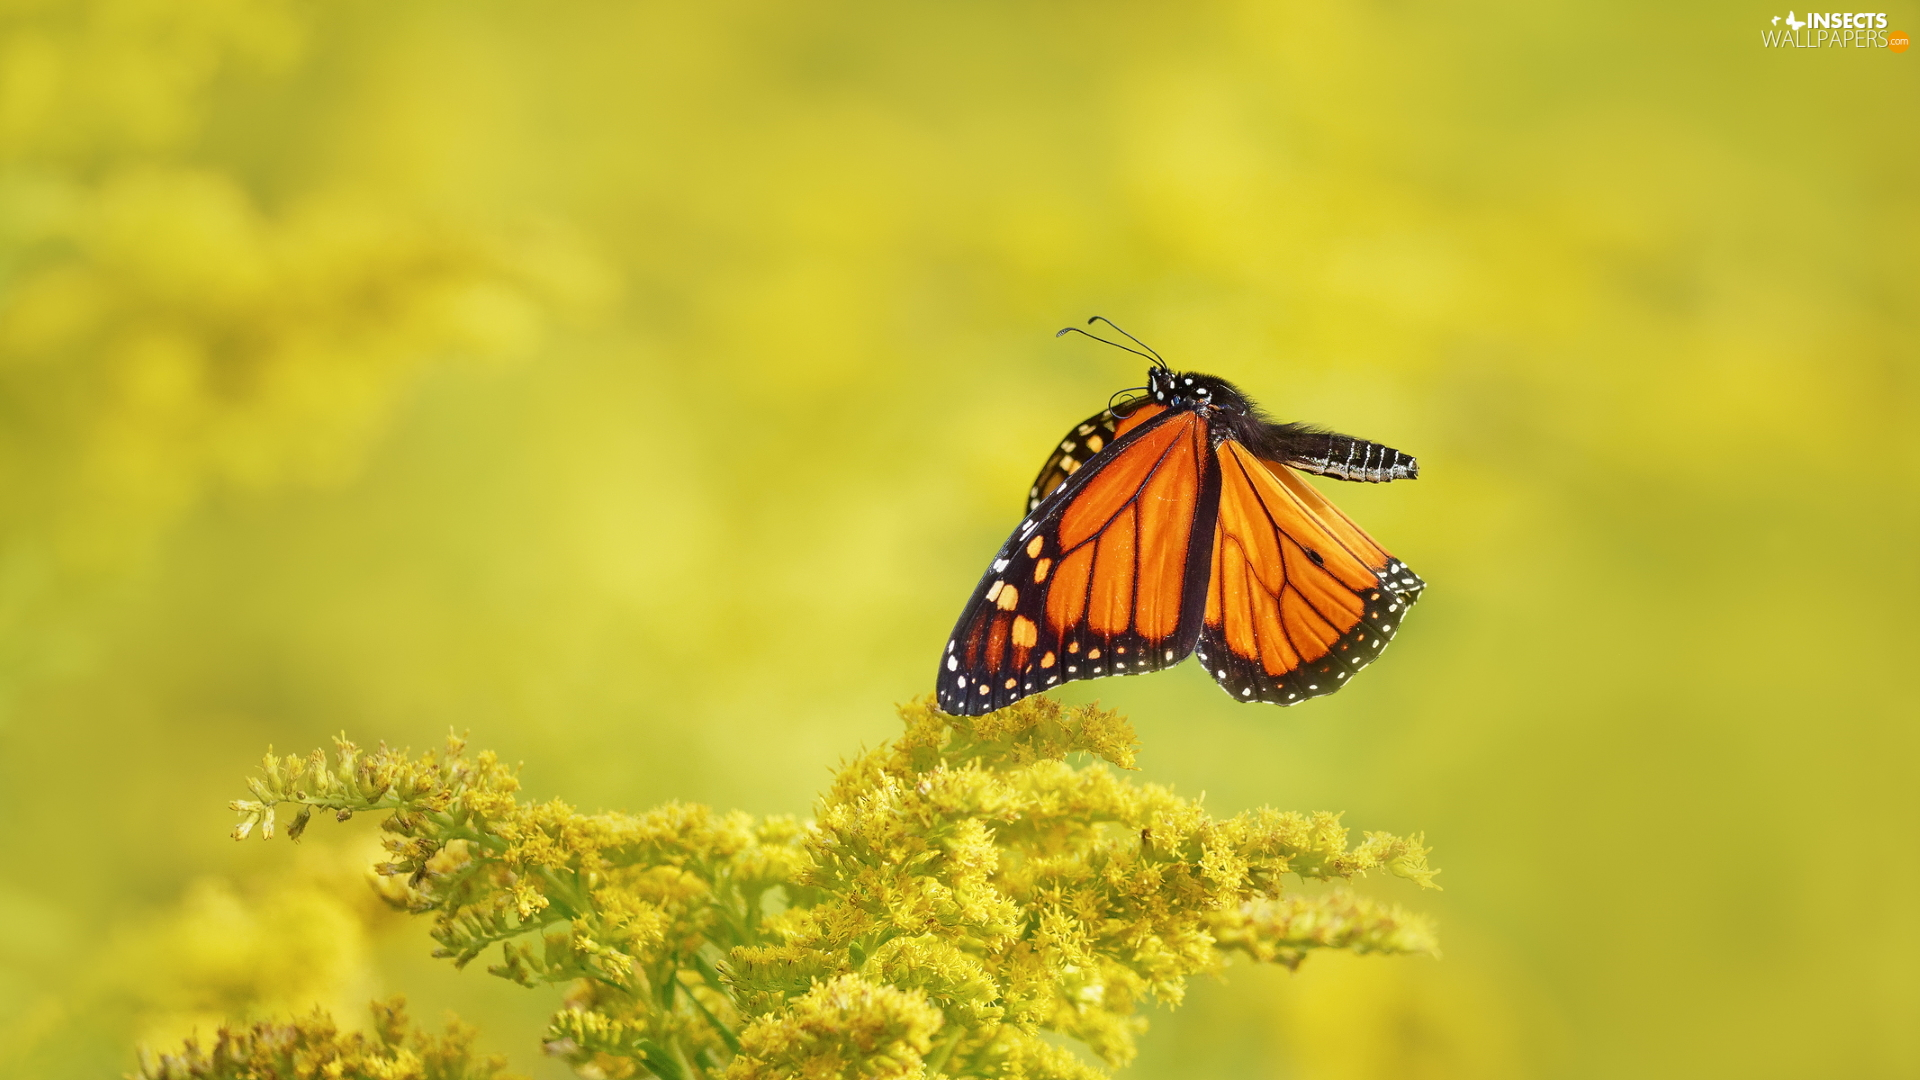 butterfly, Yellow Honda, plant, Monarch Butterfly